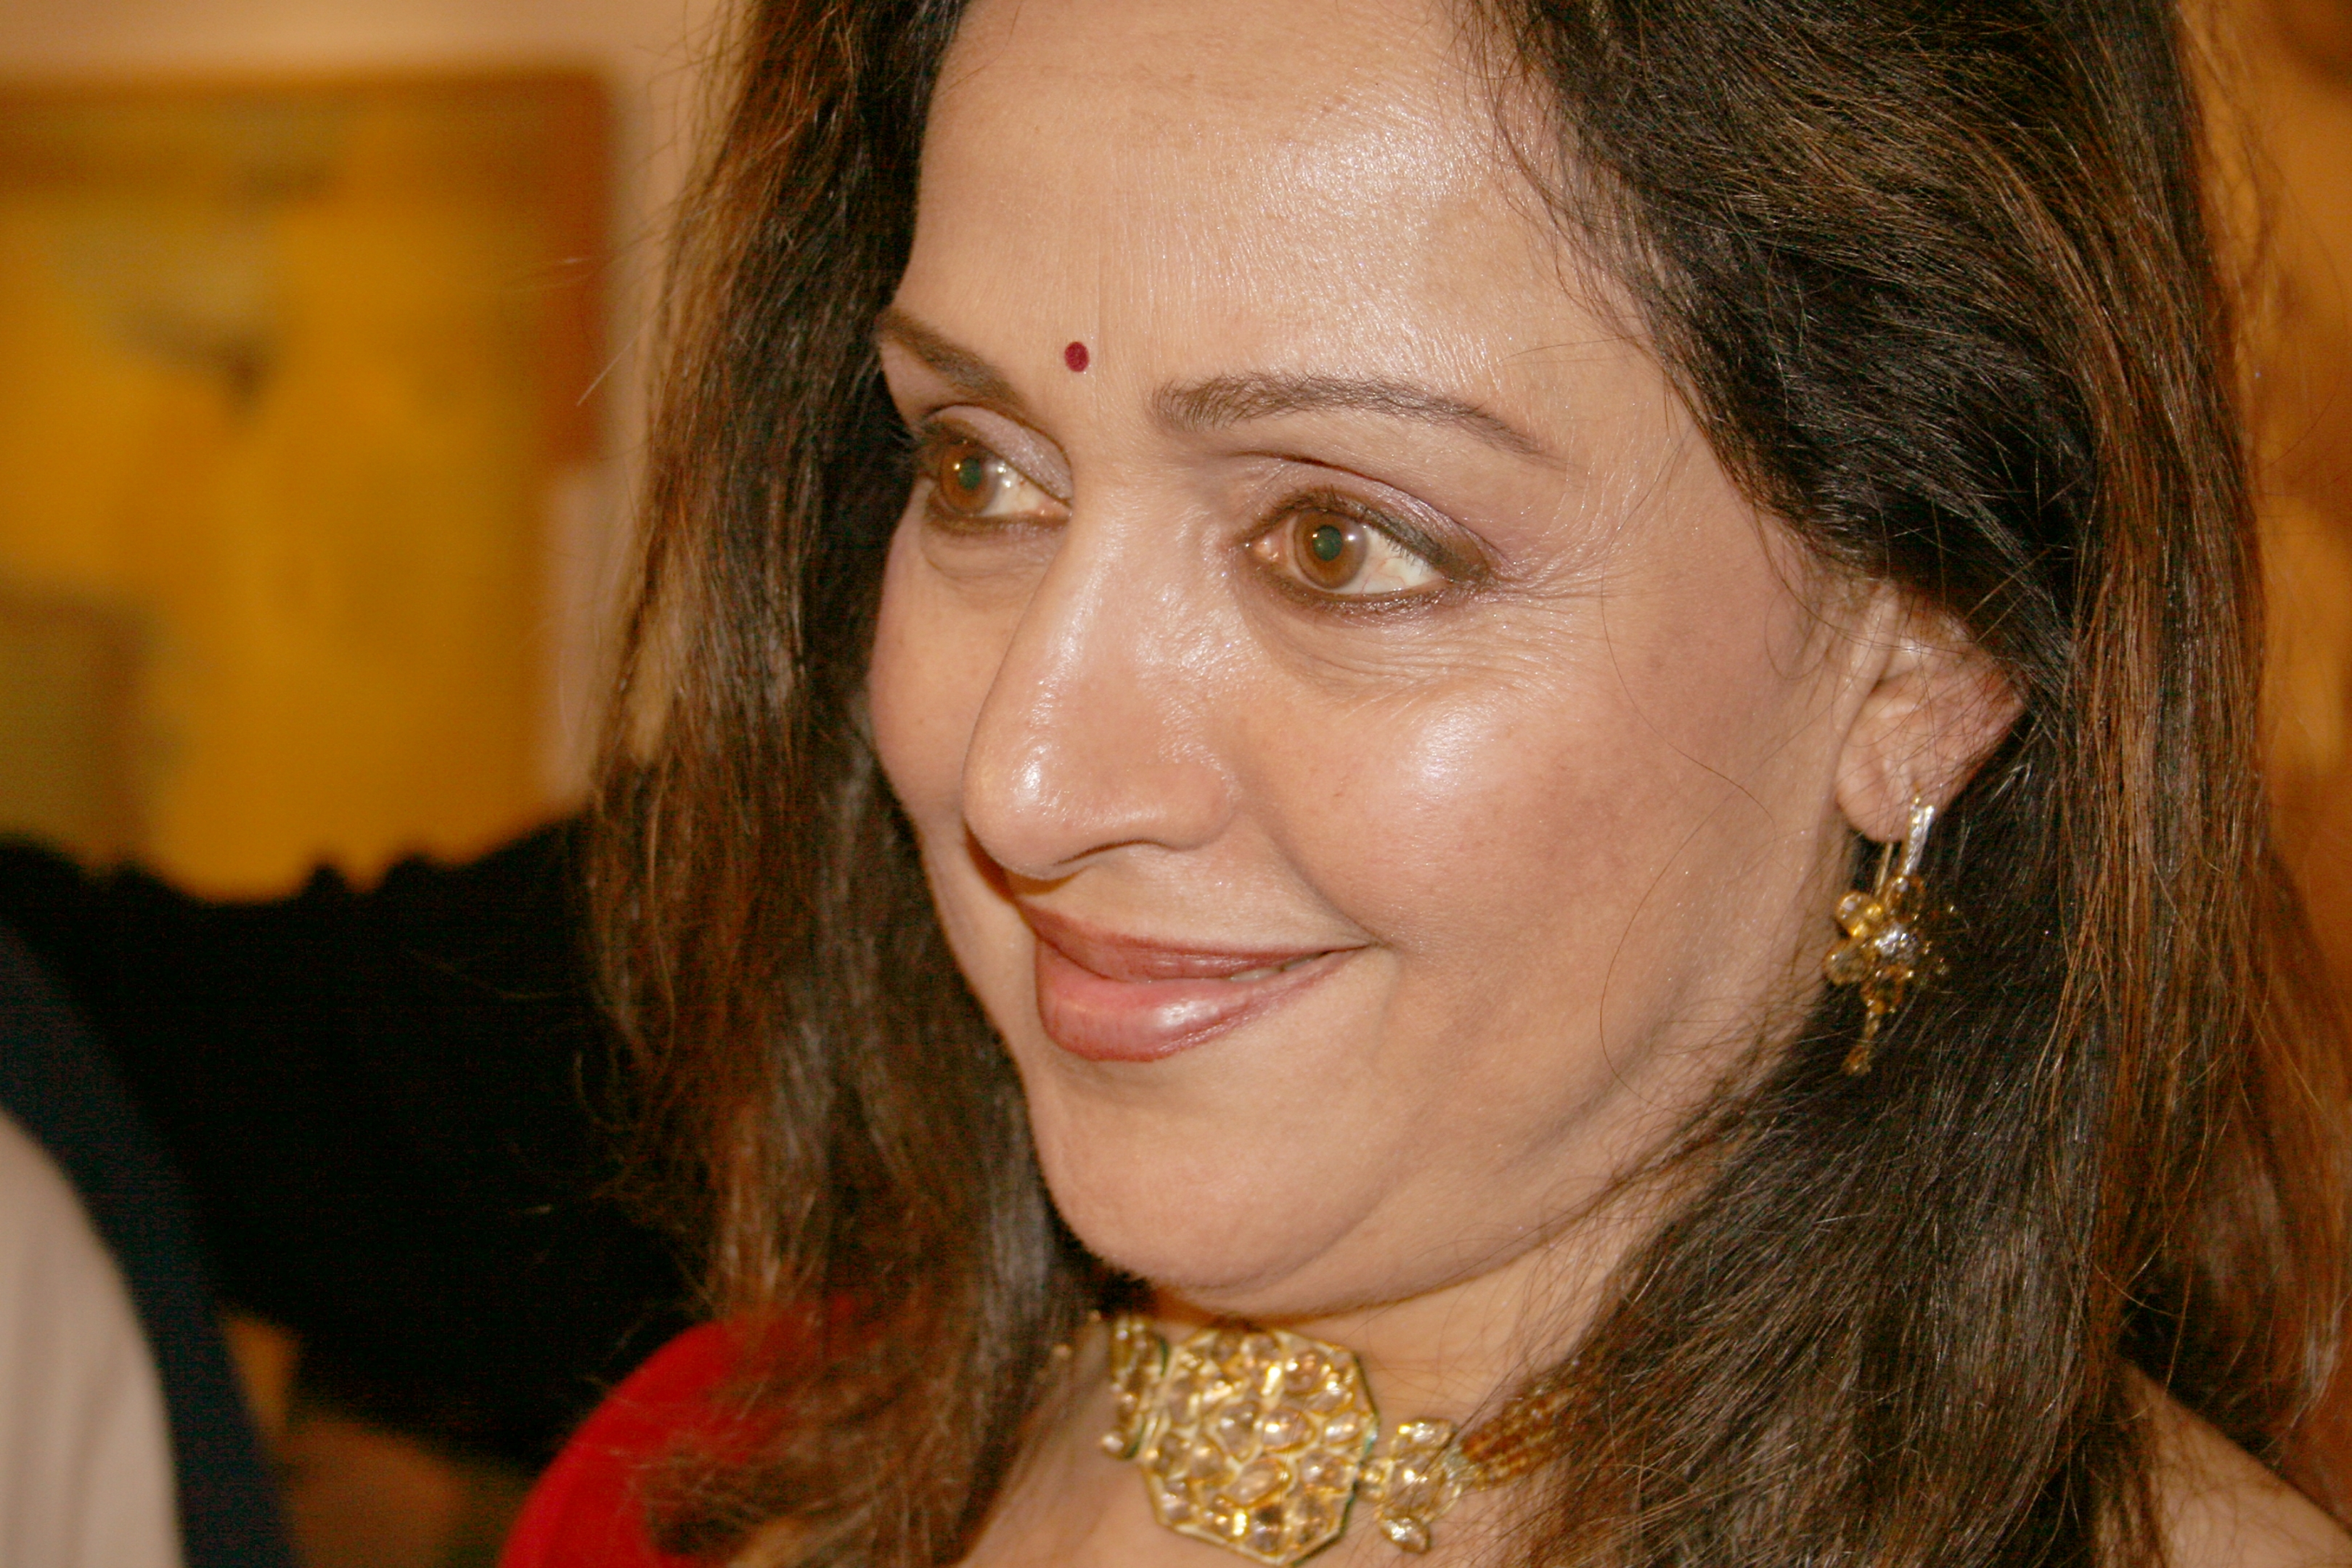 file:hema malini 156.jpg - wikimedia commons